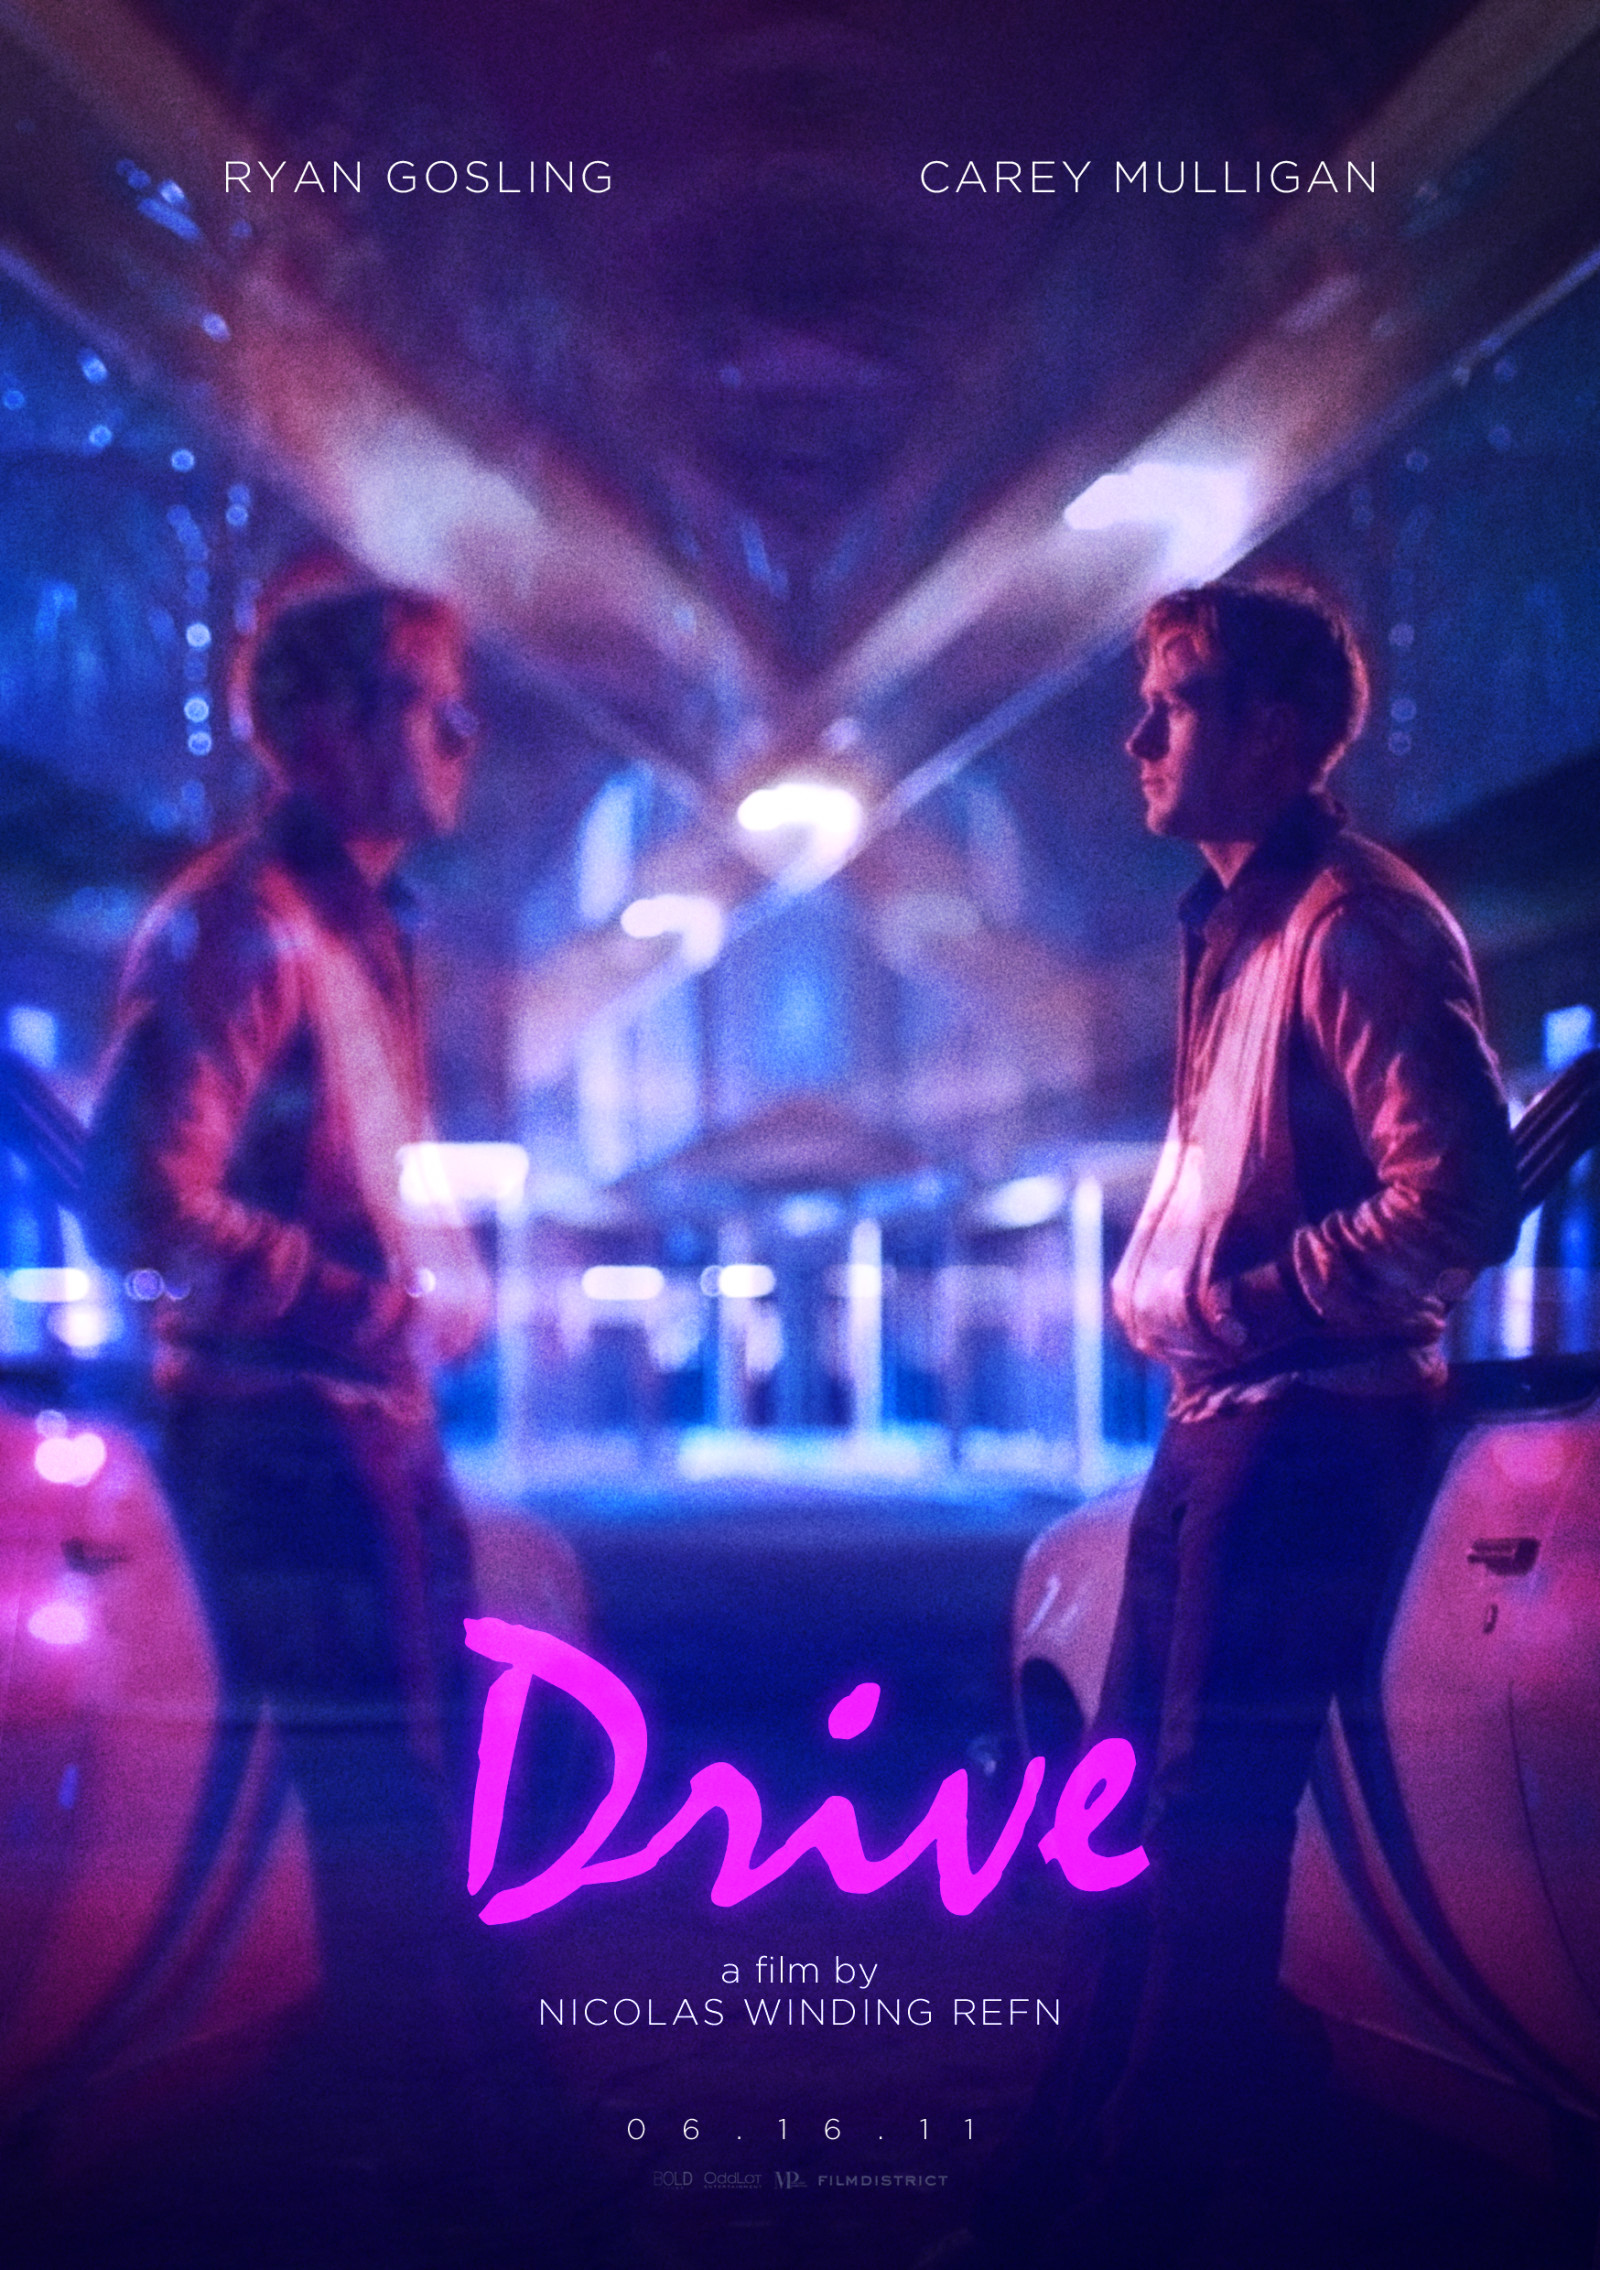 Drive (2011) HD Wallpaper From Gallsource.com